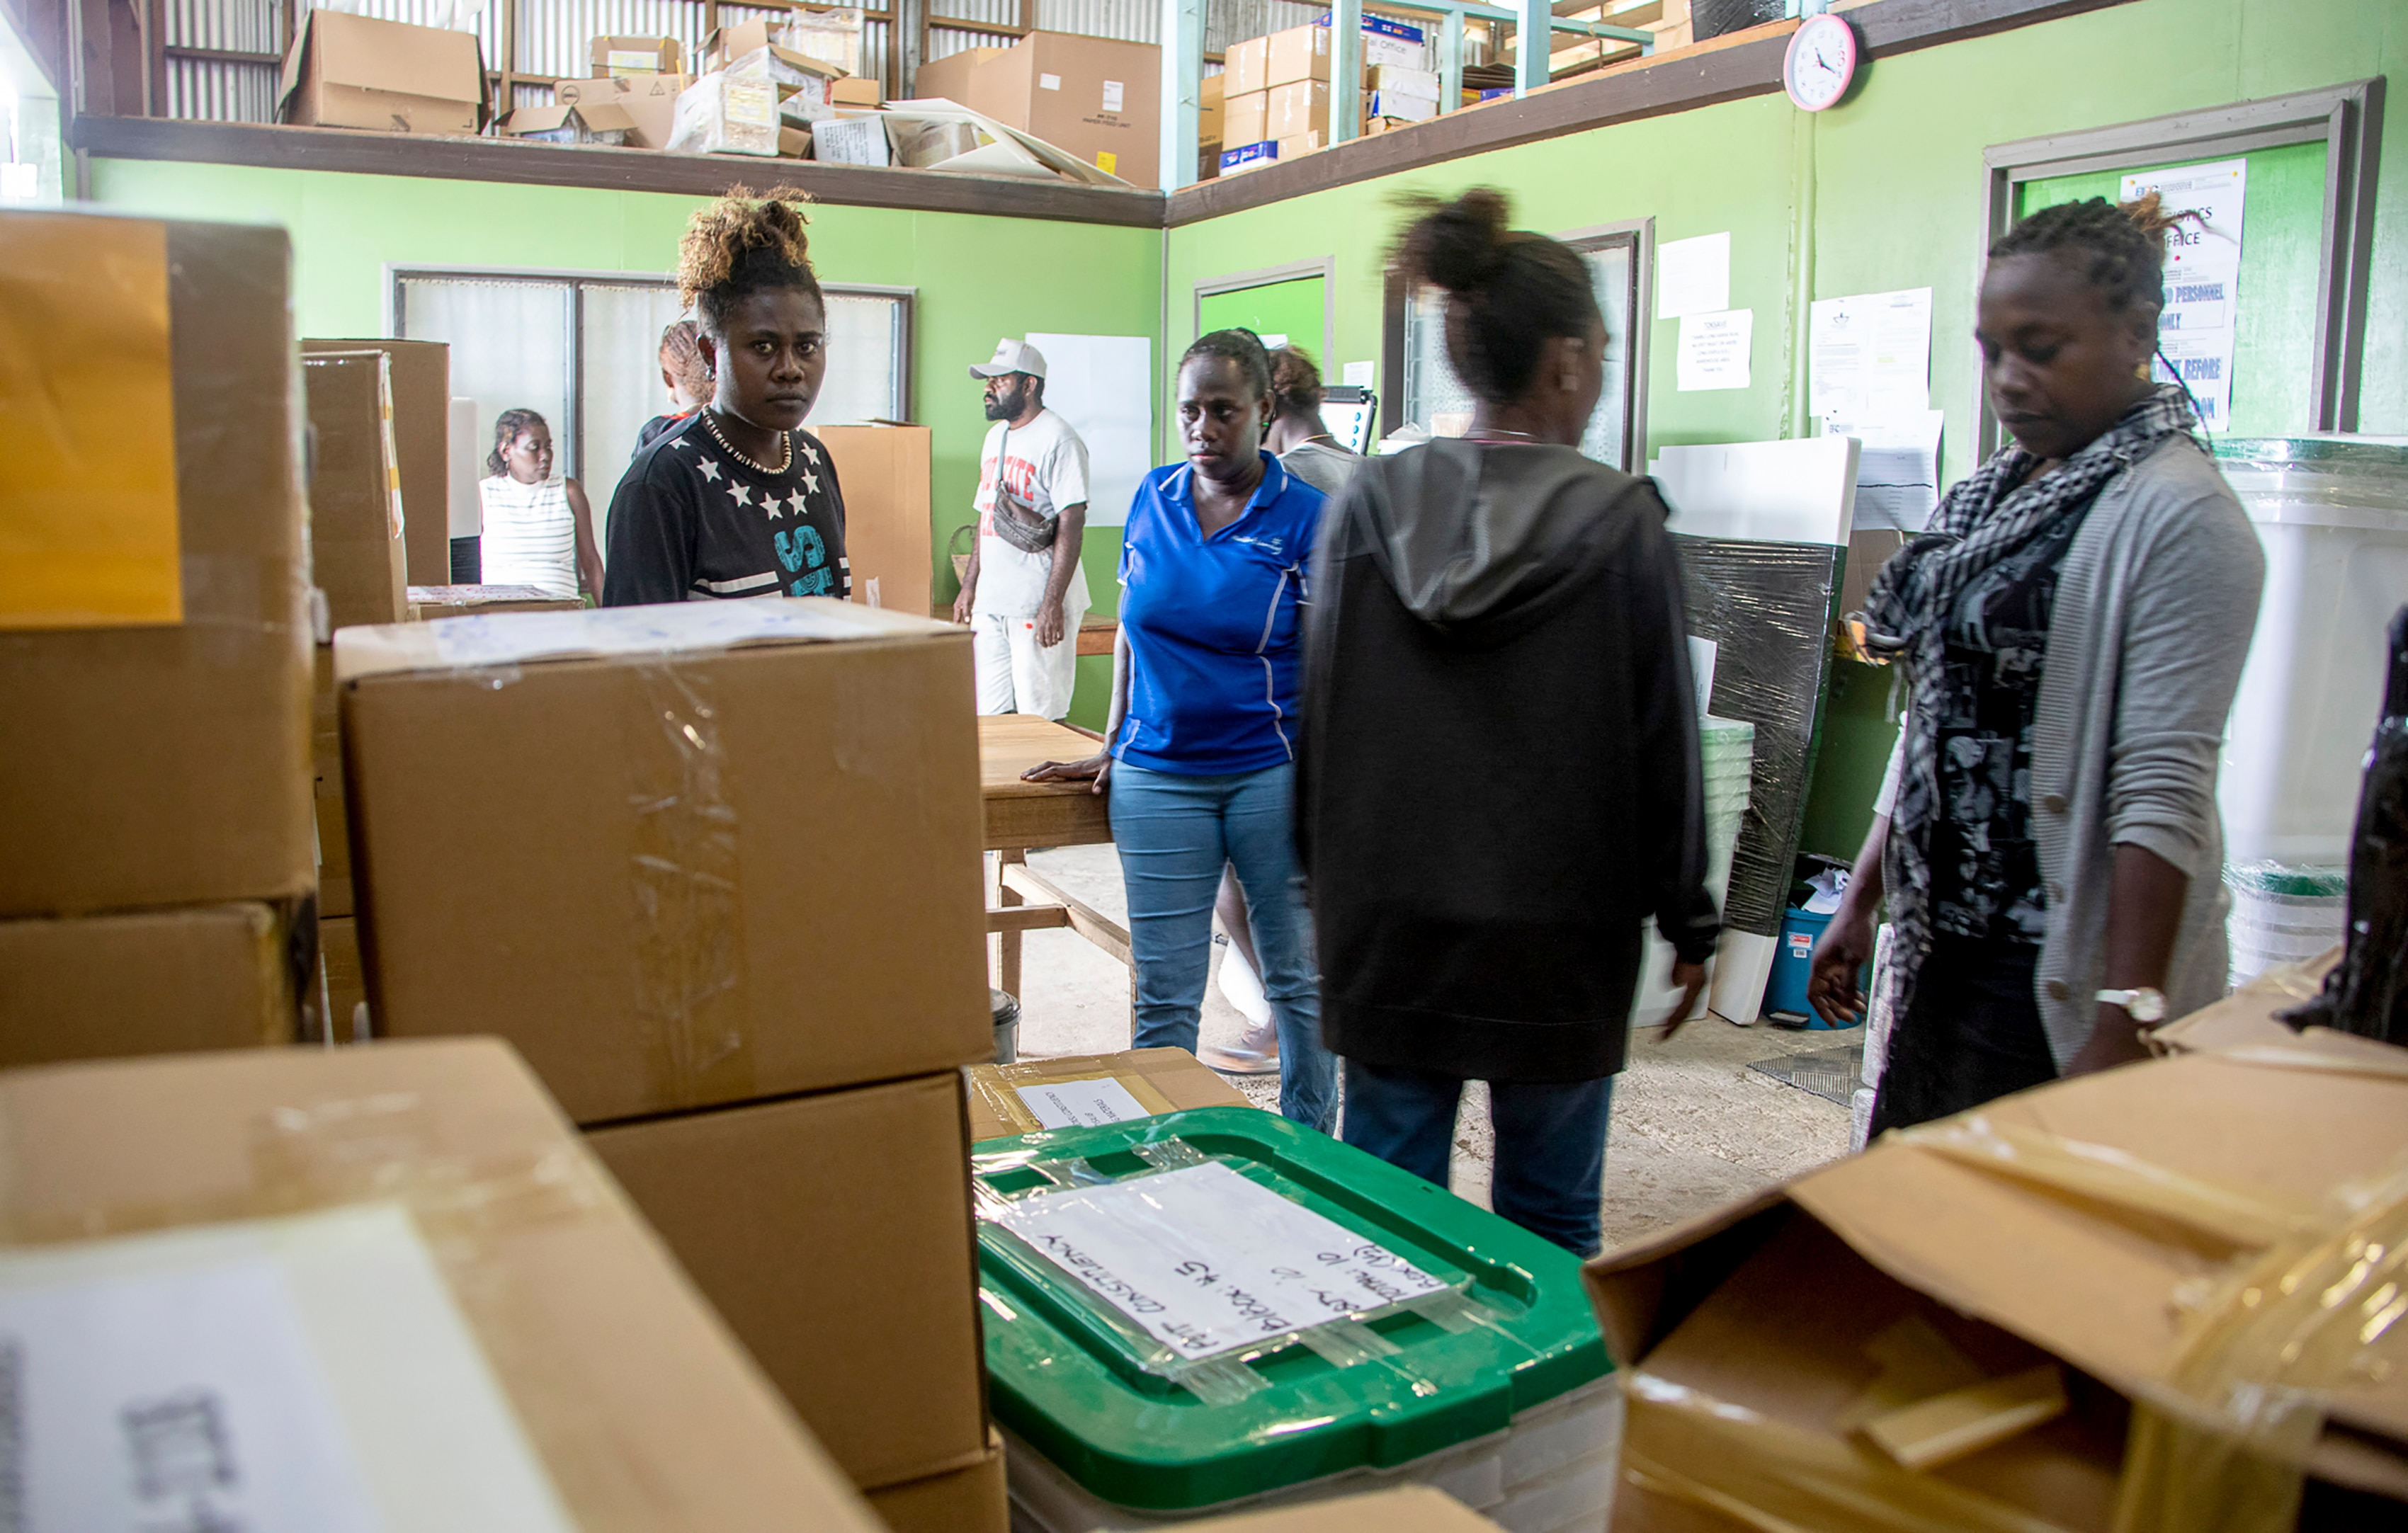 Workers prepare a polling station ahead of the historic independence vote.